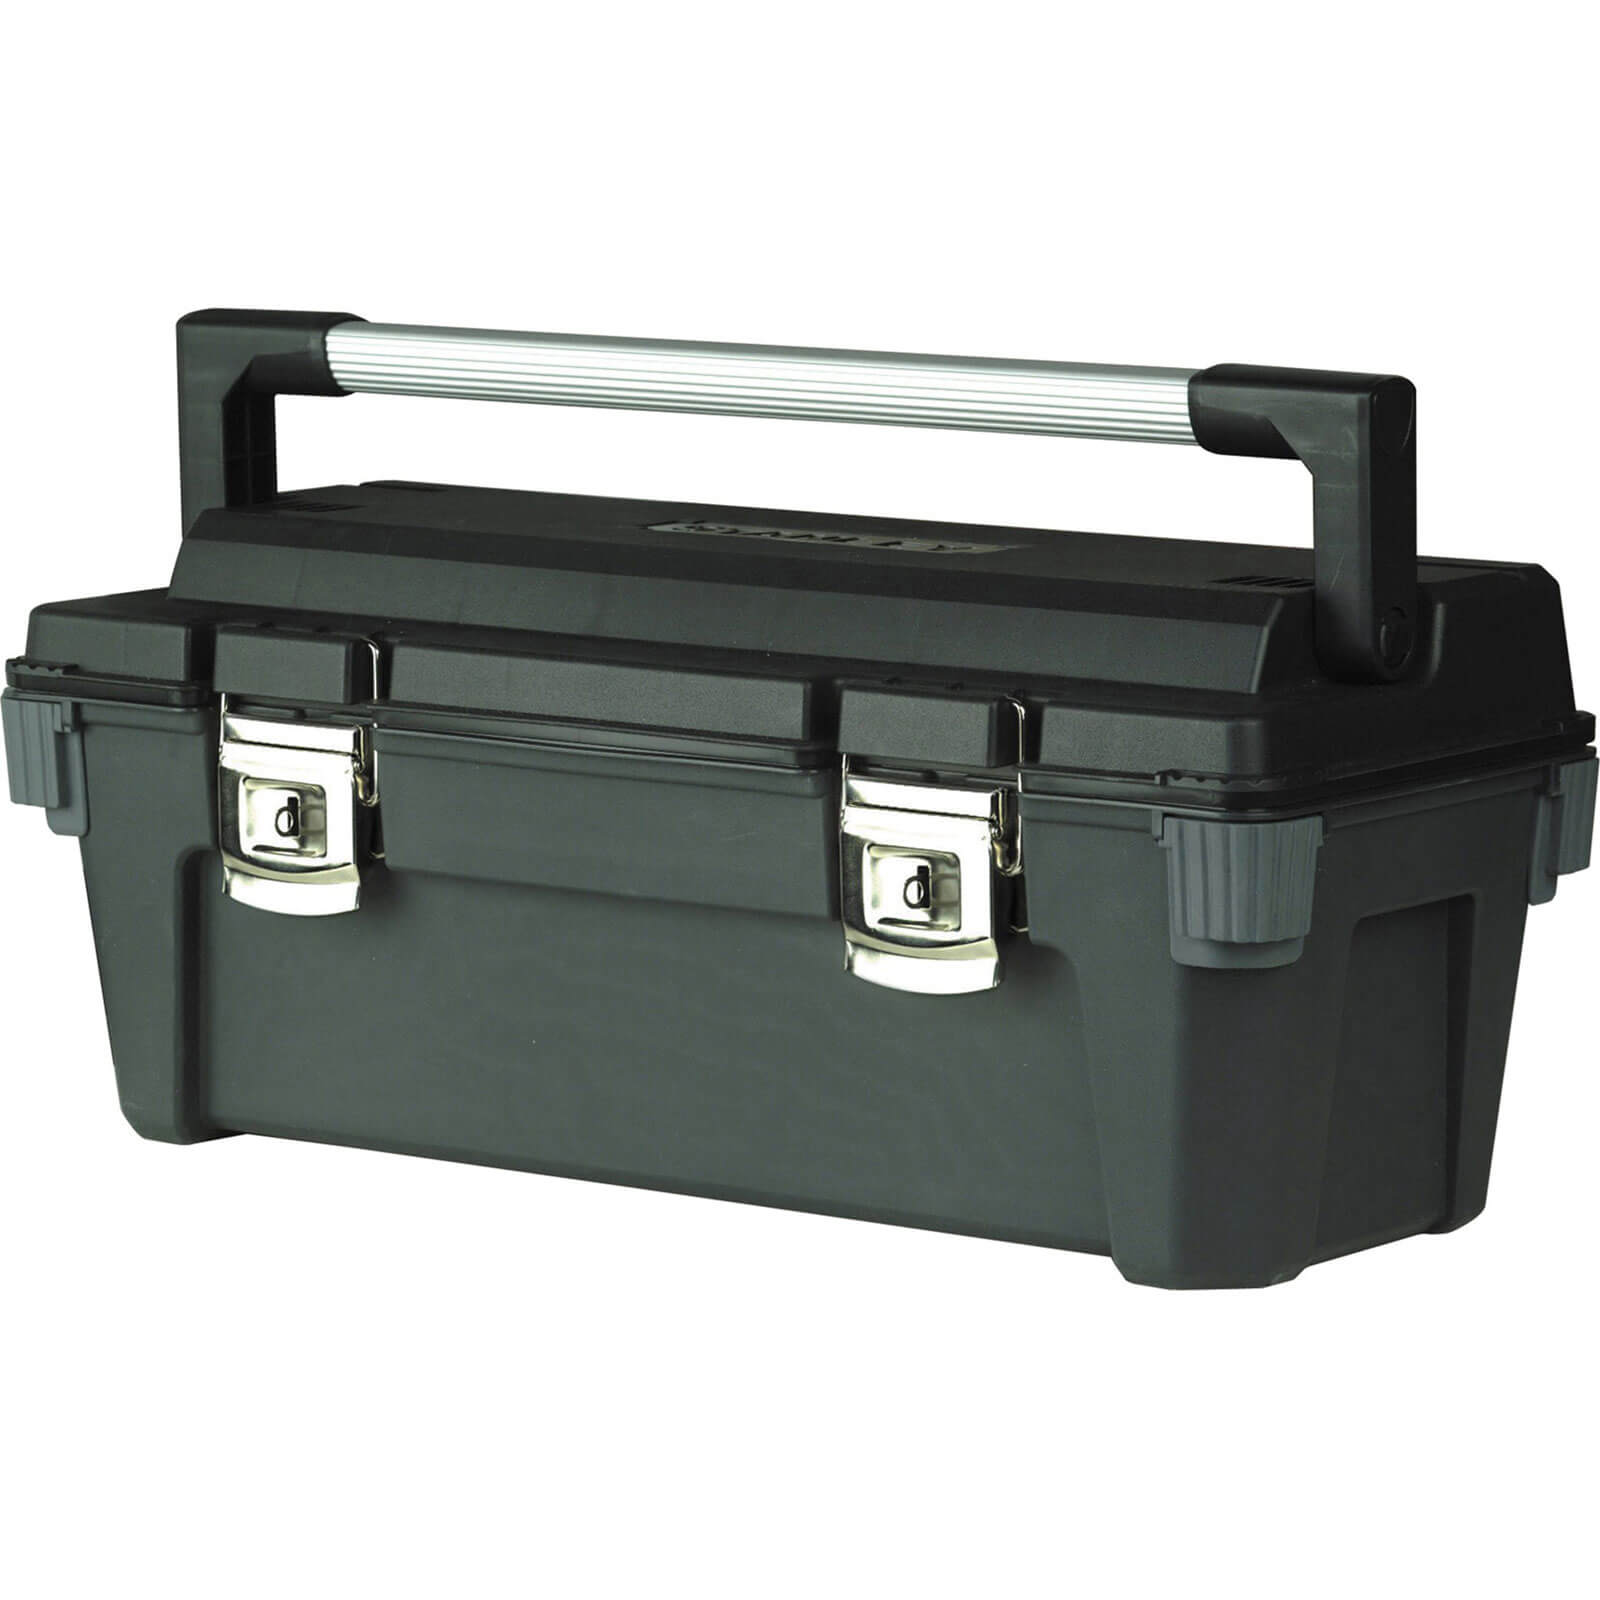 Stanley Professional Plastic Tool Box 650mm